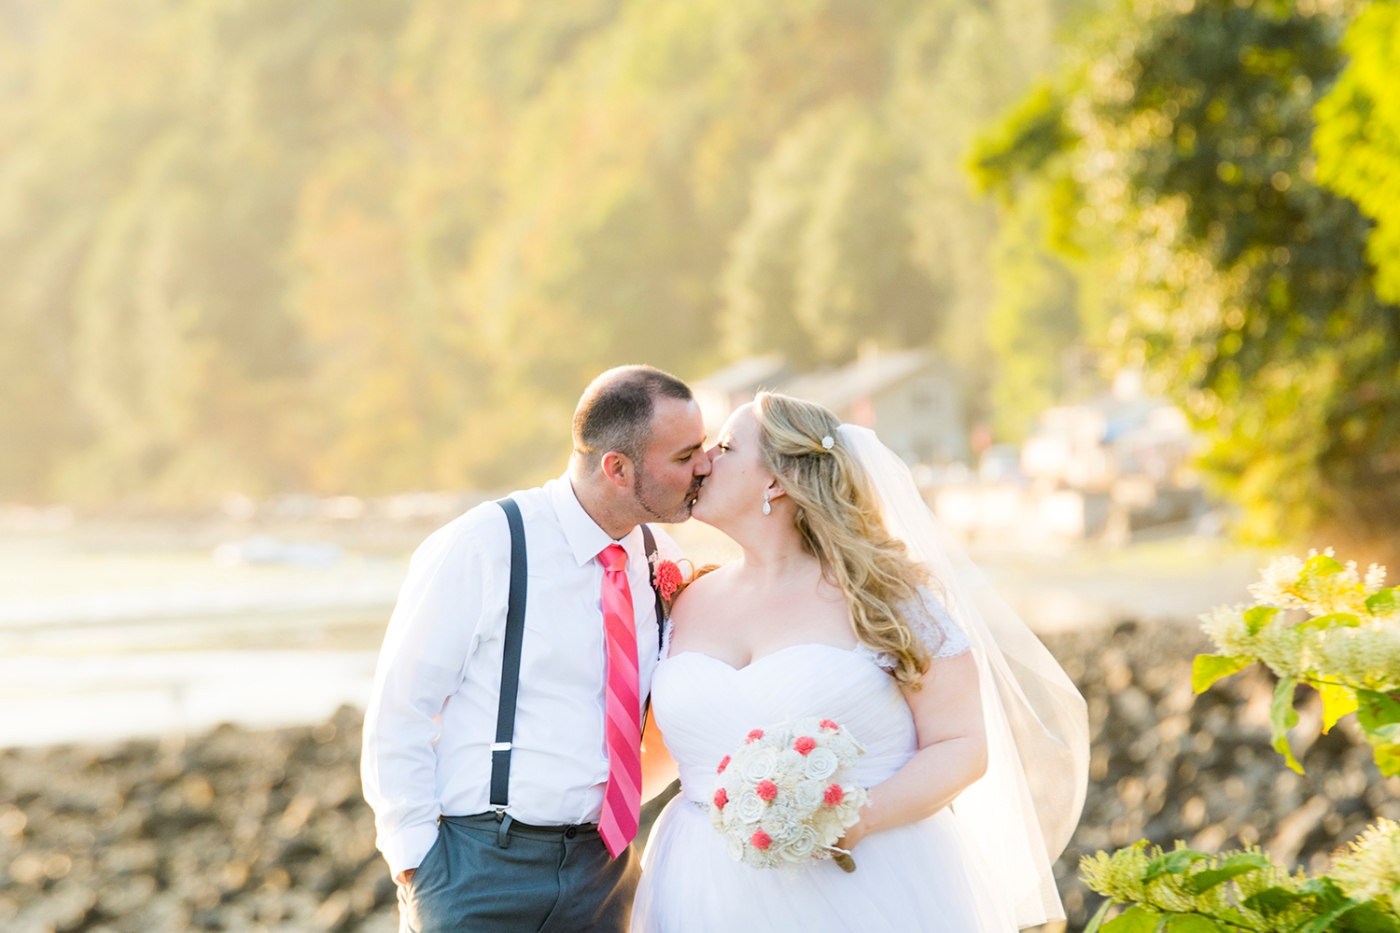 Jane_Speleers_Photography_Seattle_Wedding_waterfront_JS7_9549